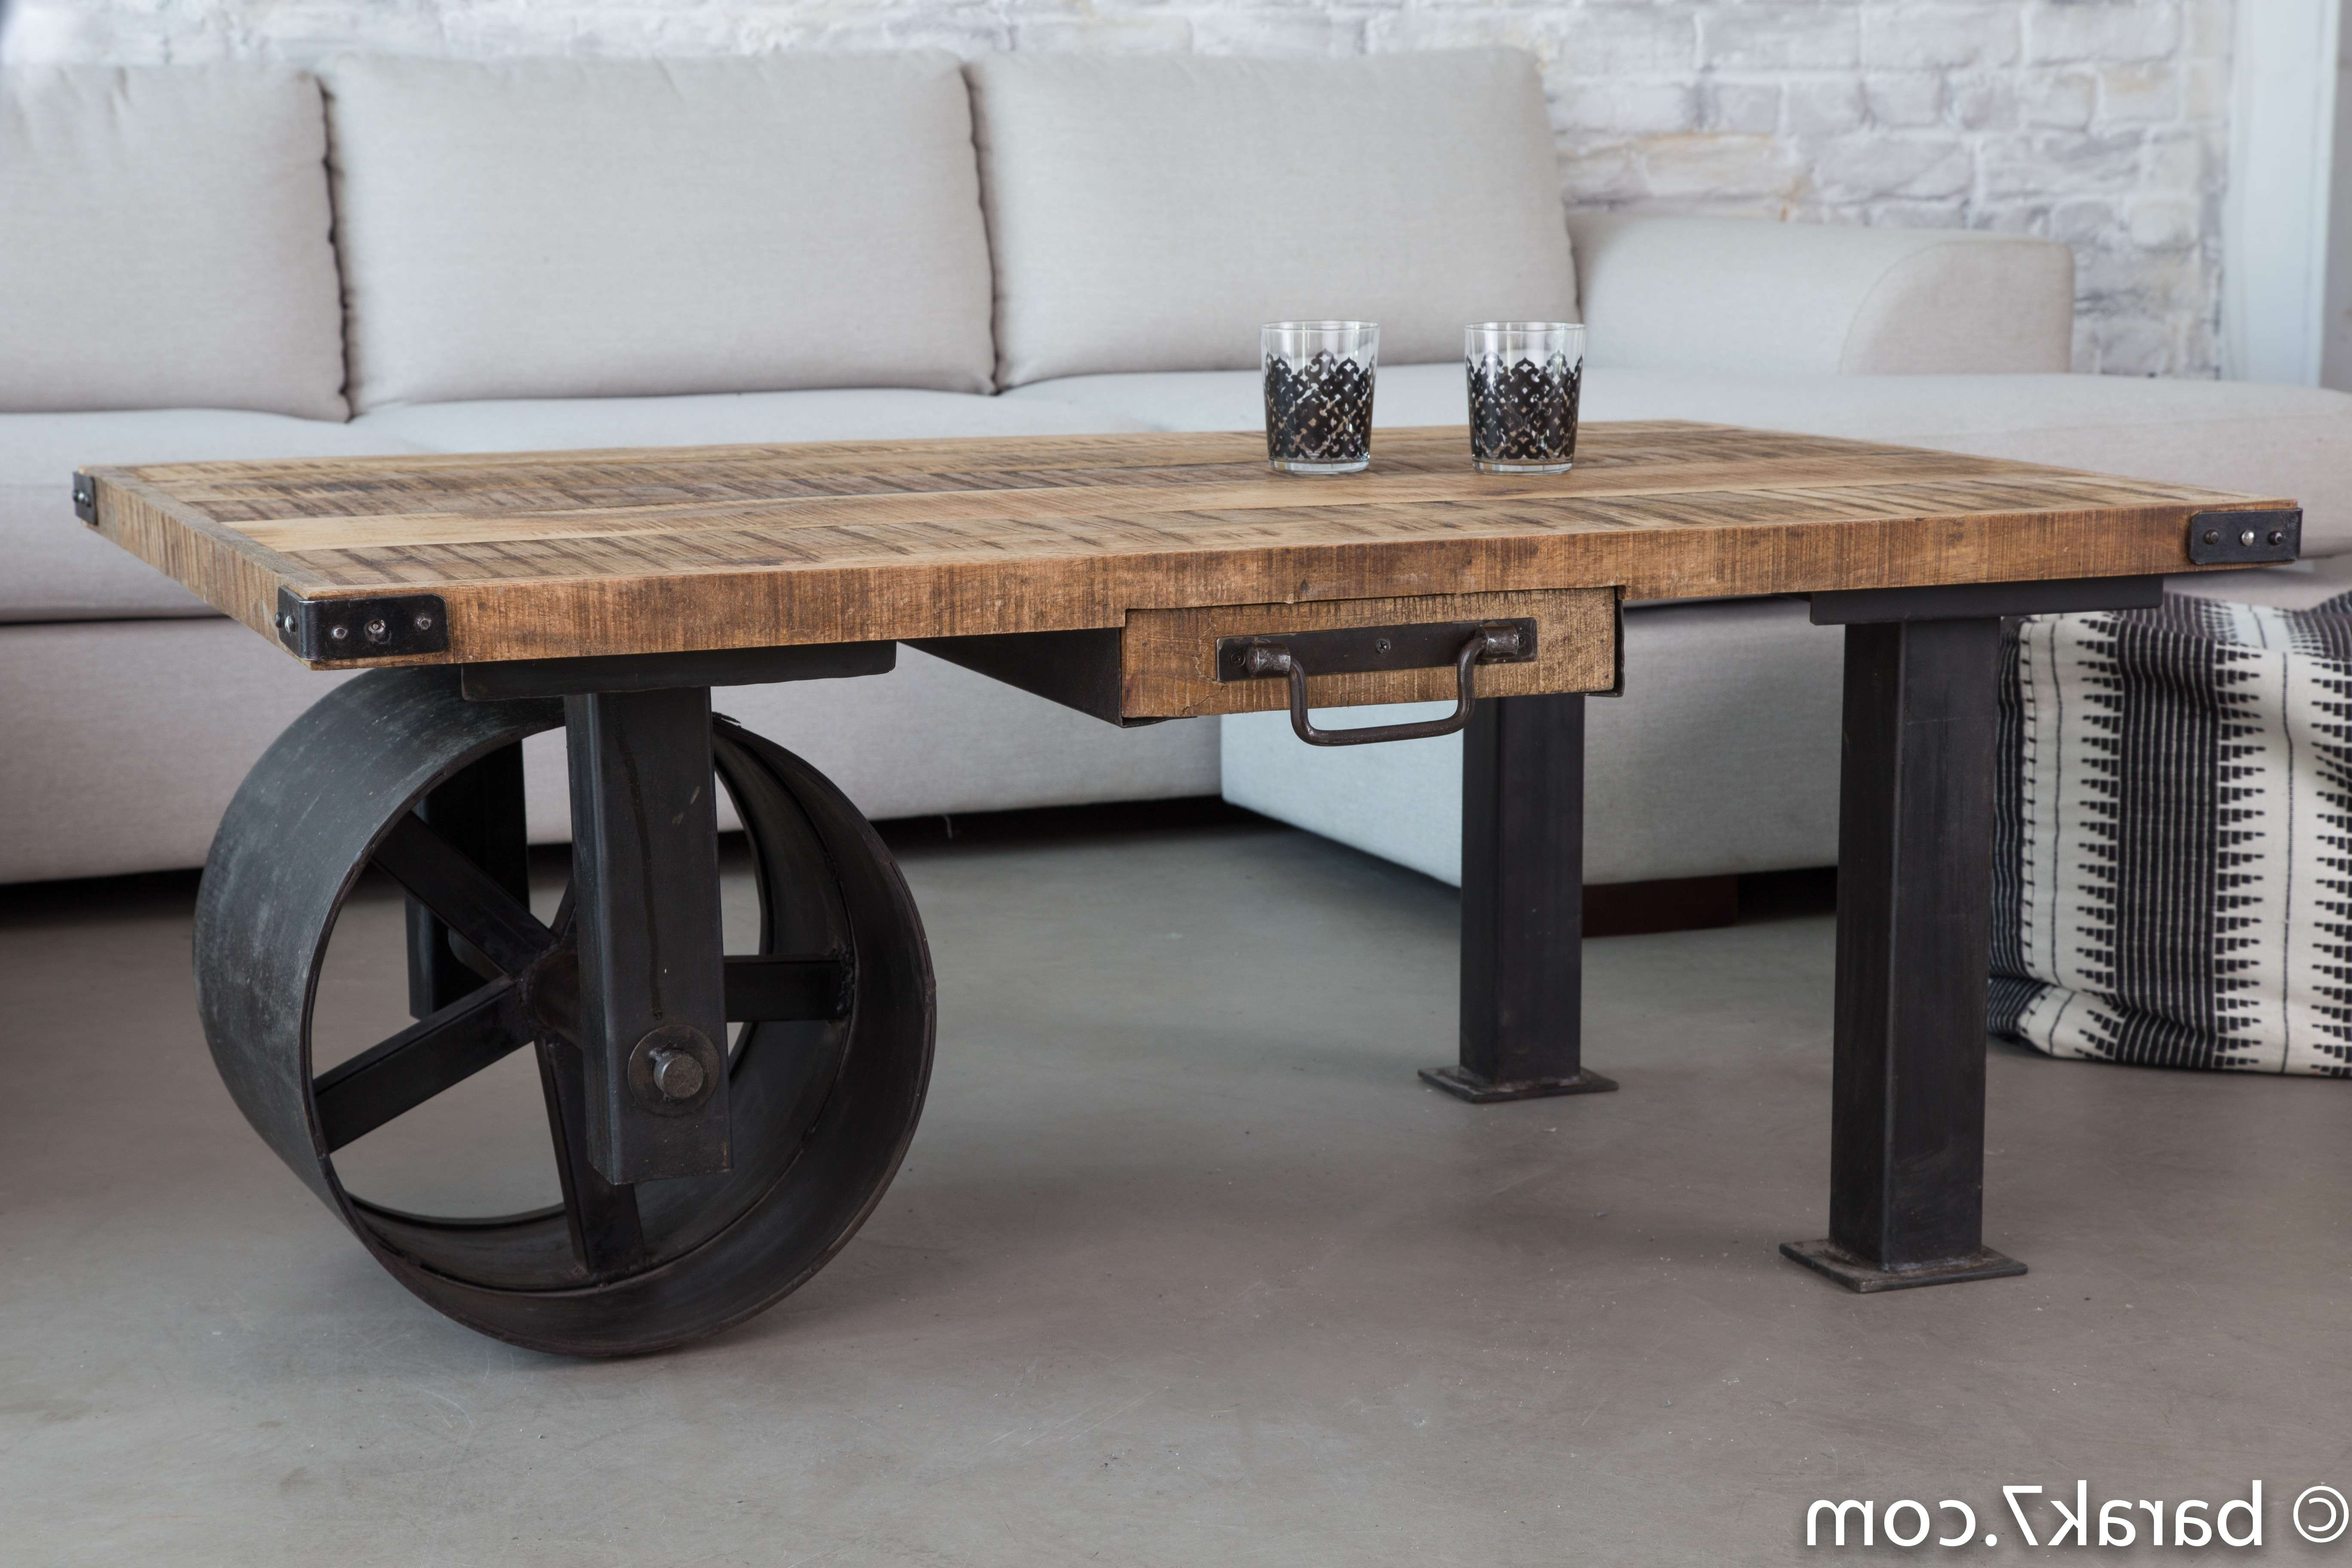 New Industrial Style Furniture Range From Barak'7 – The Art Of Regarding Well Known Industrial Style Coffee Tables (Gallery 6 of 20)